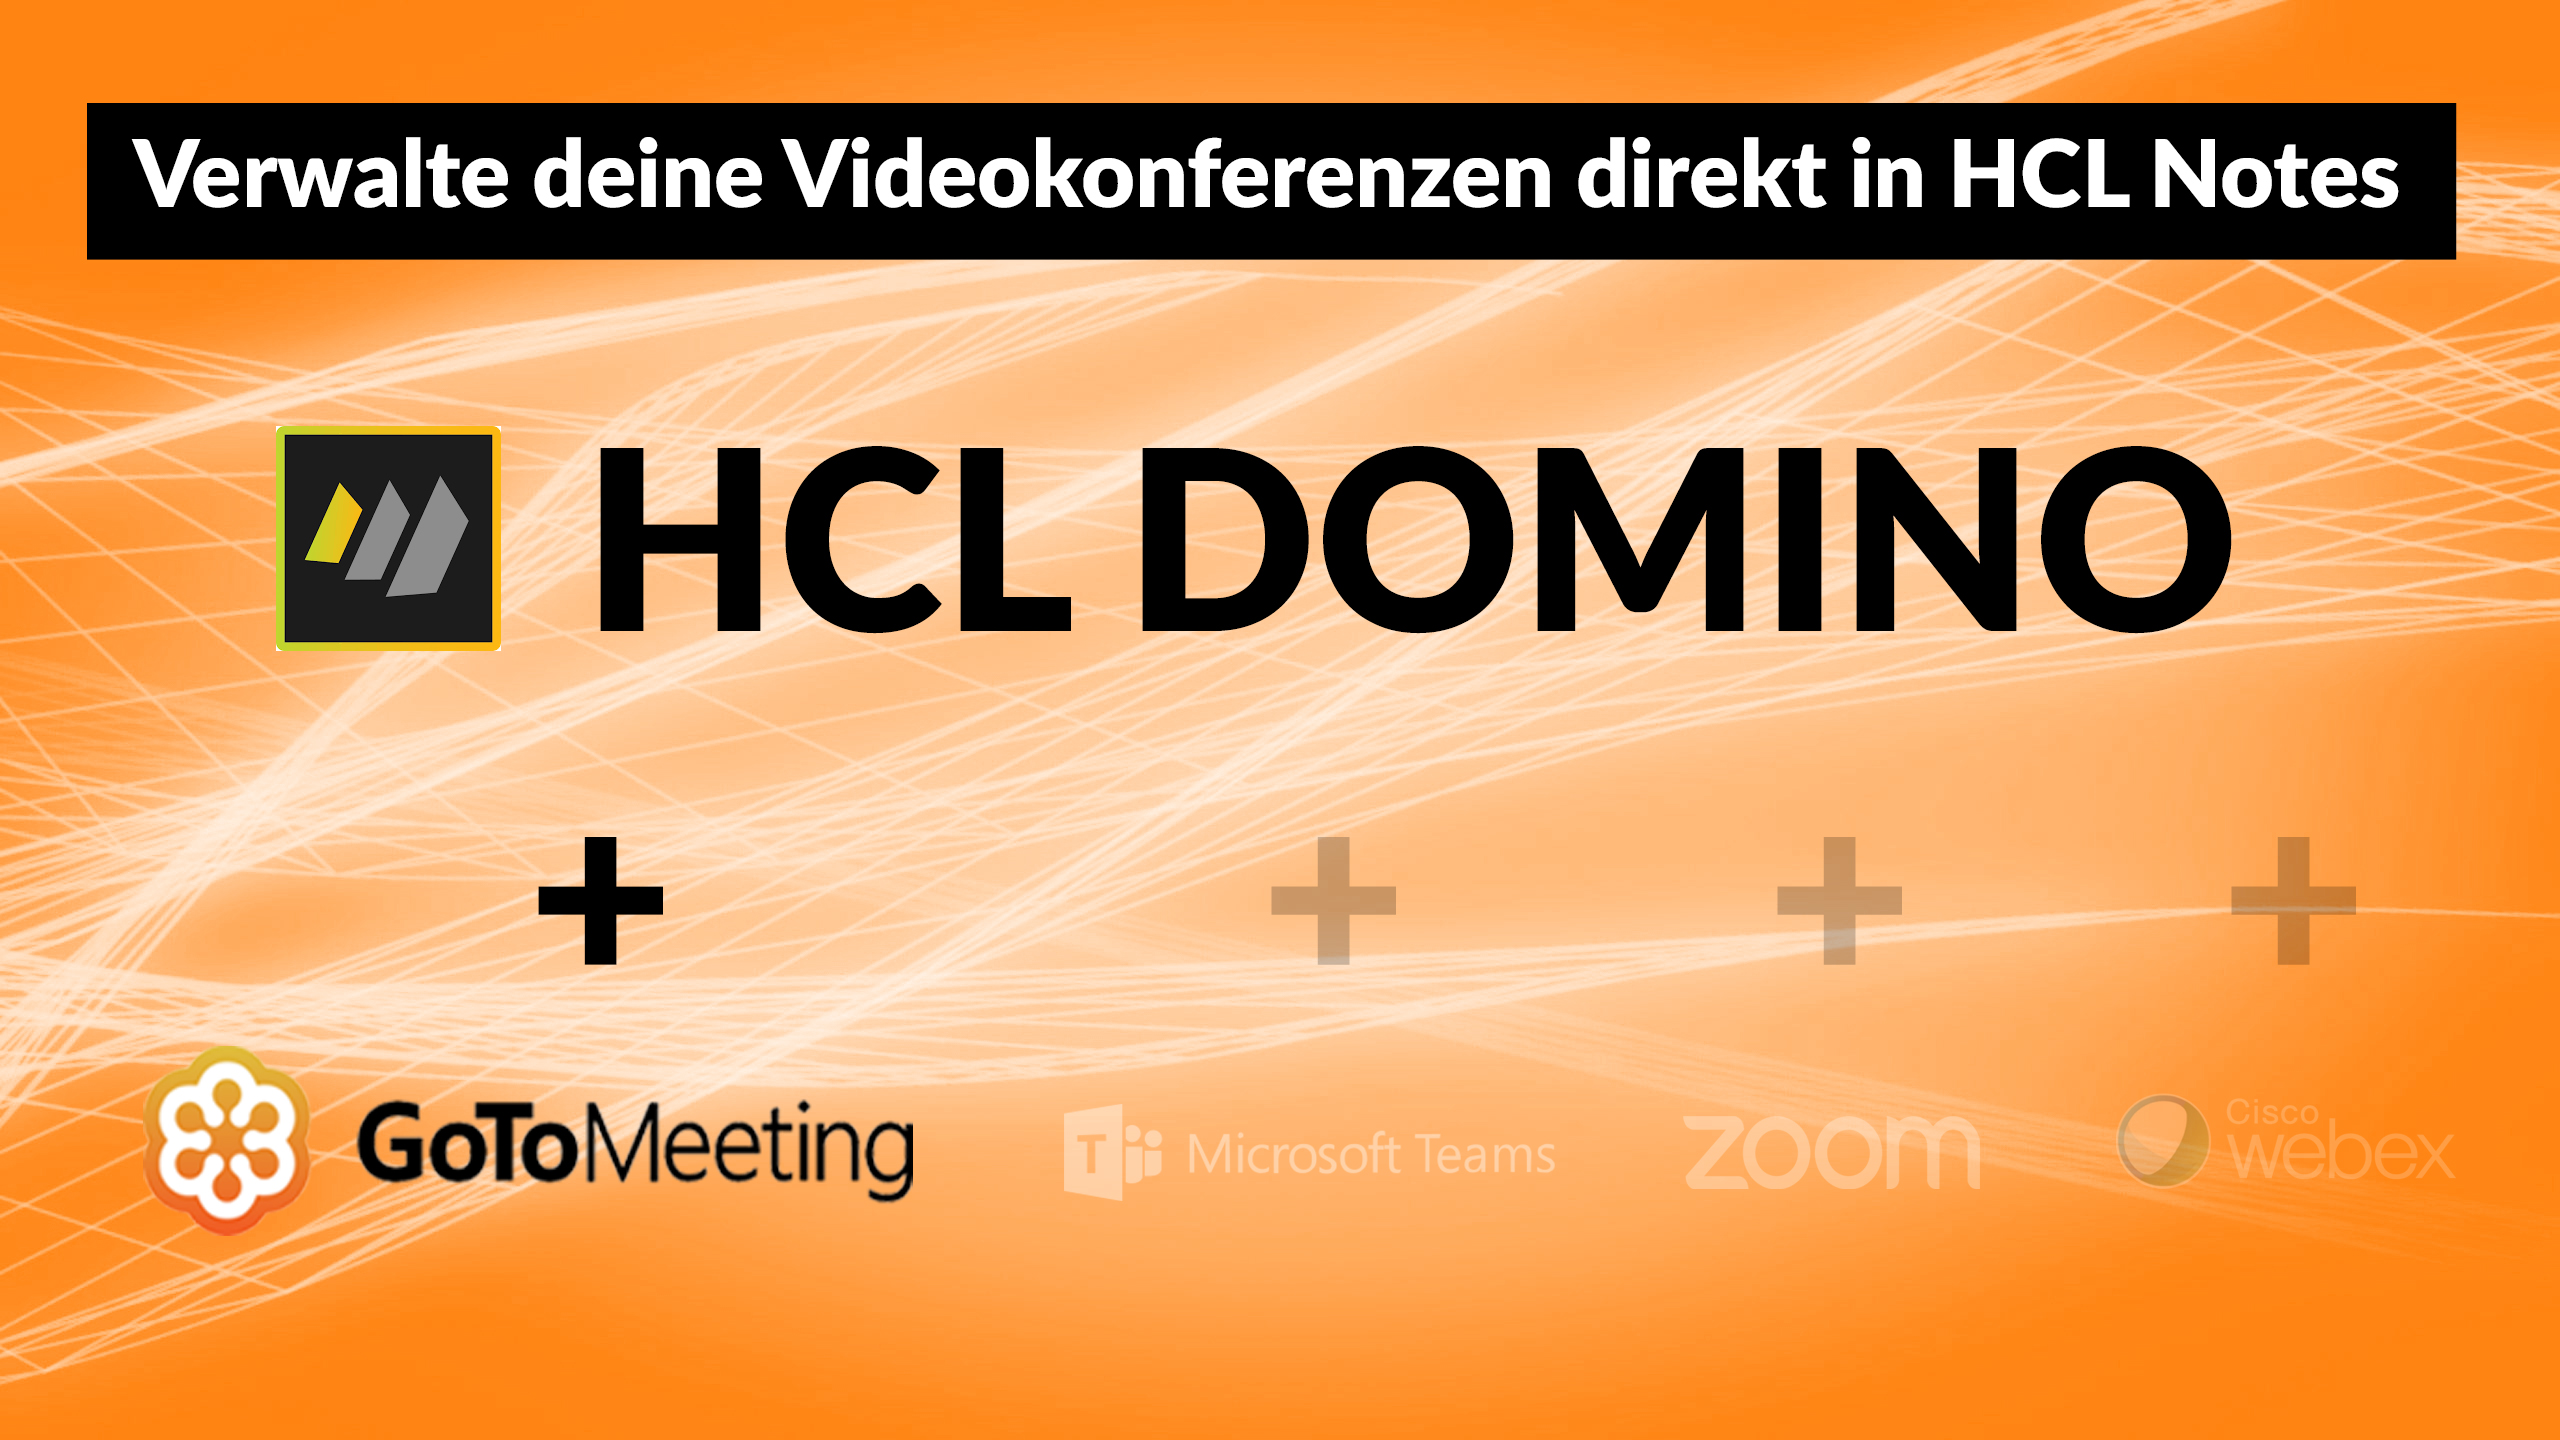 GoToMeeting HCL Webinar